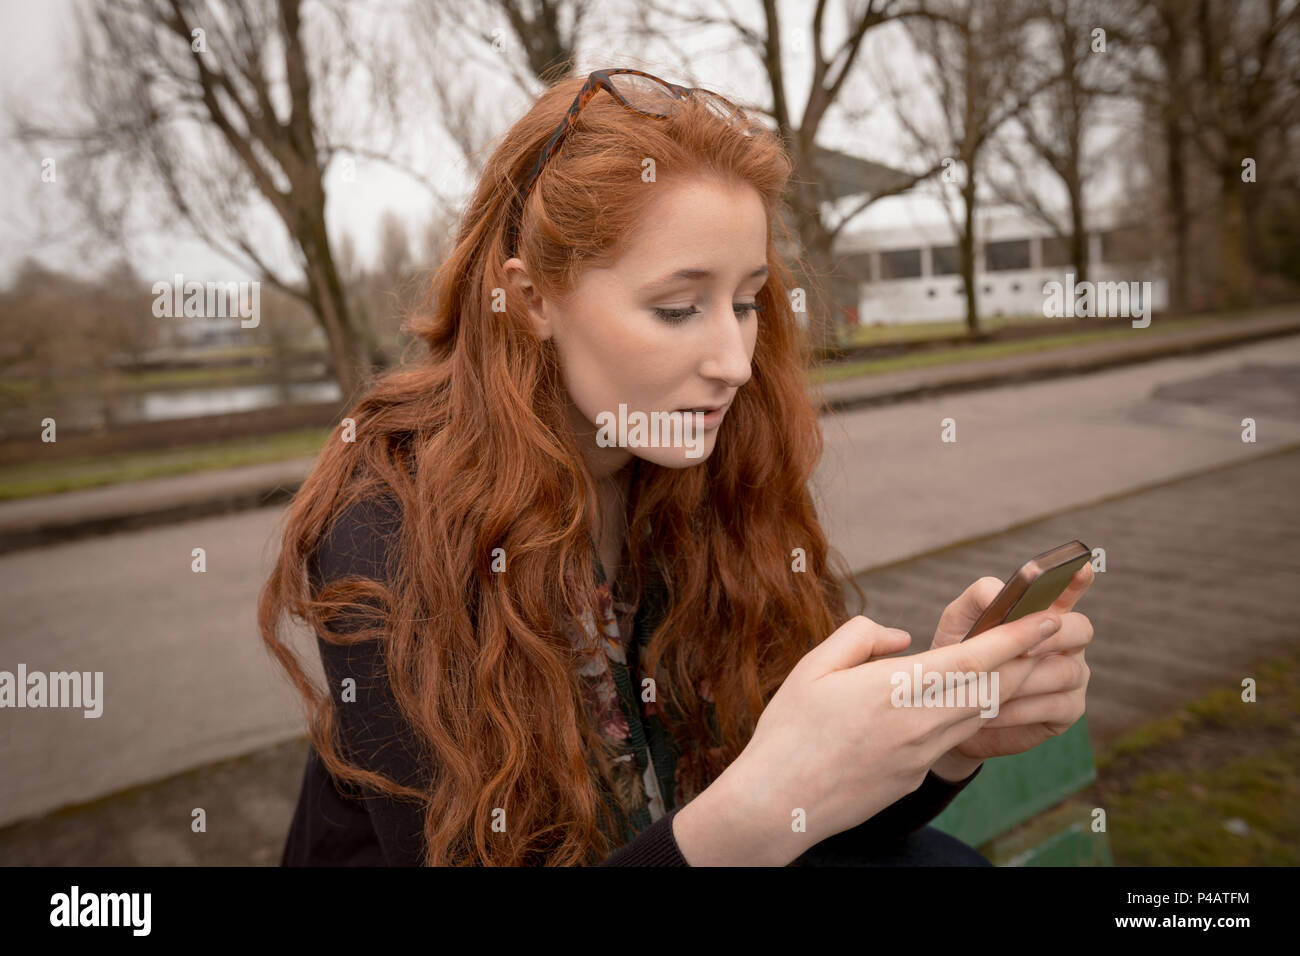 Woman using mobile phone in countryside - Stock Image